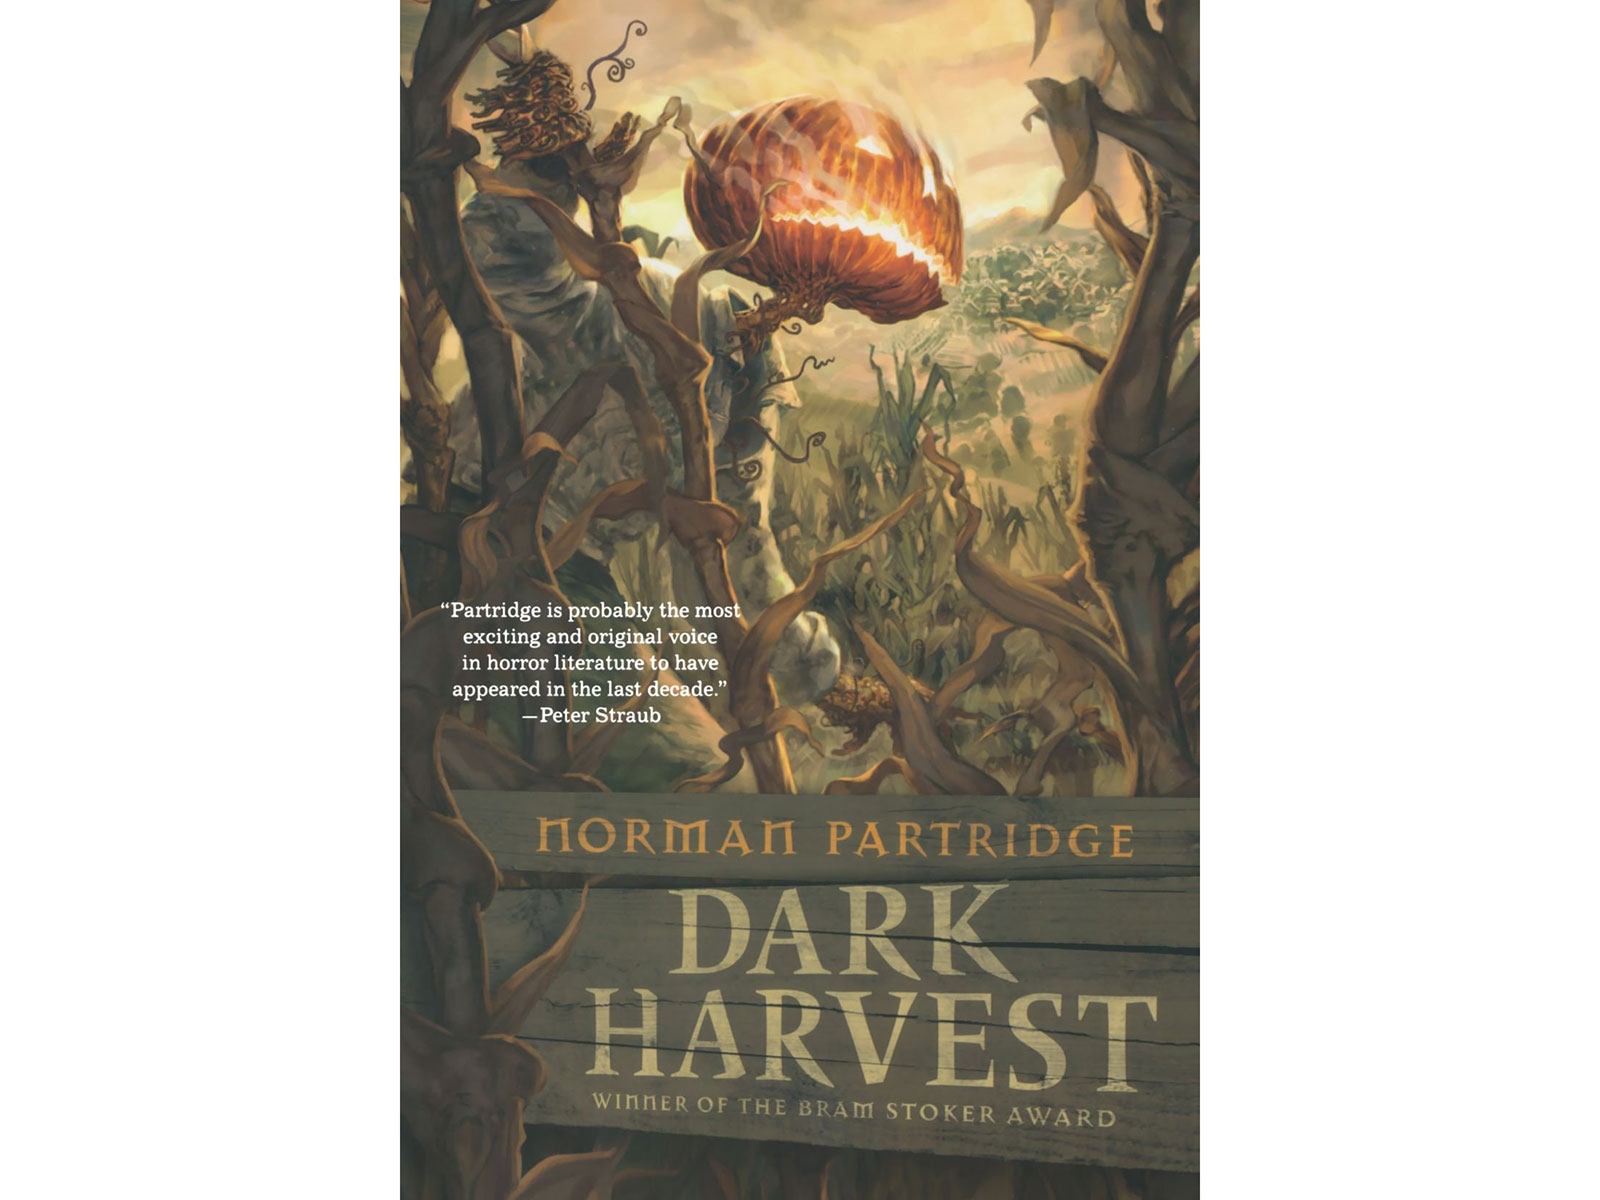 dark harvset book